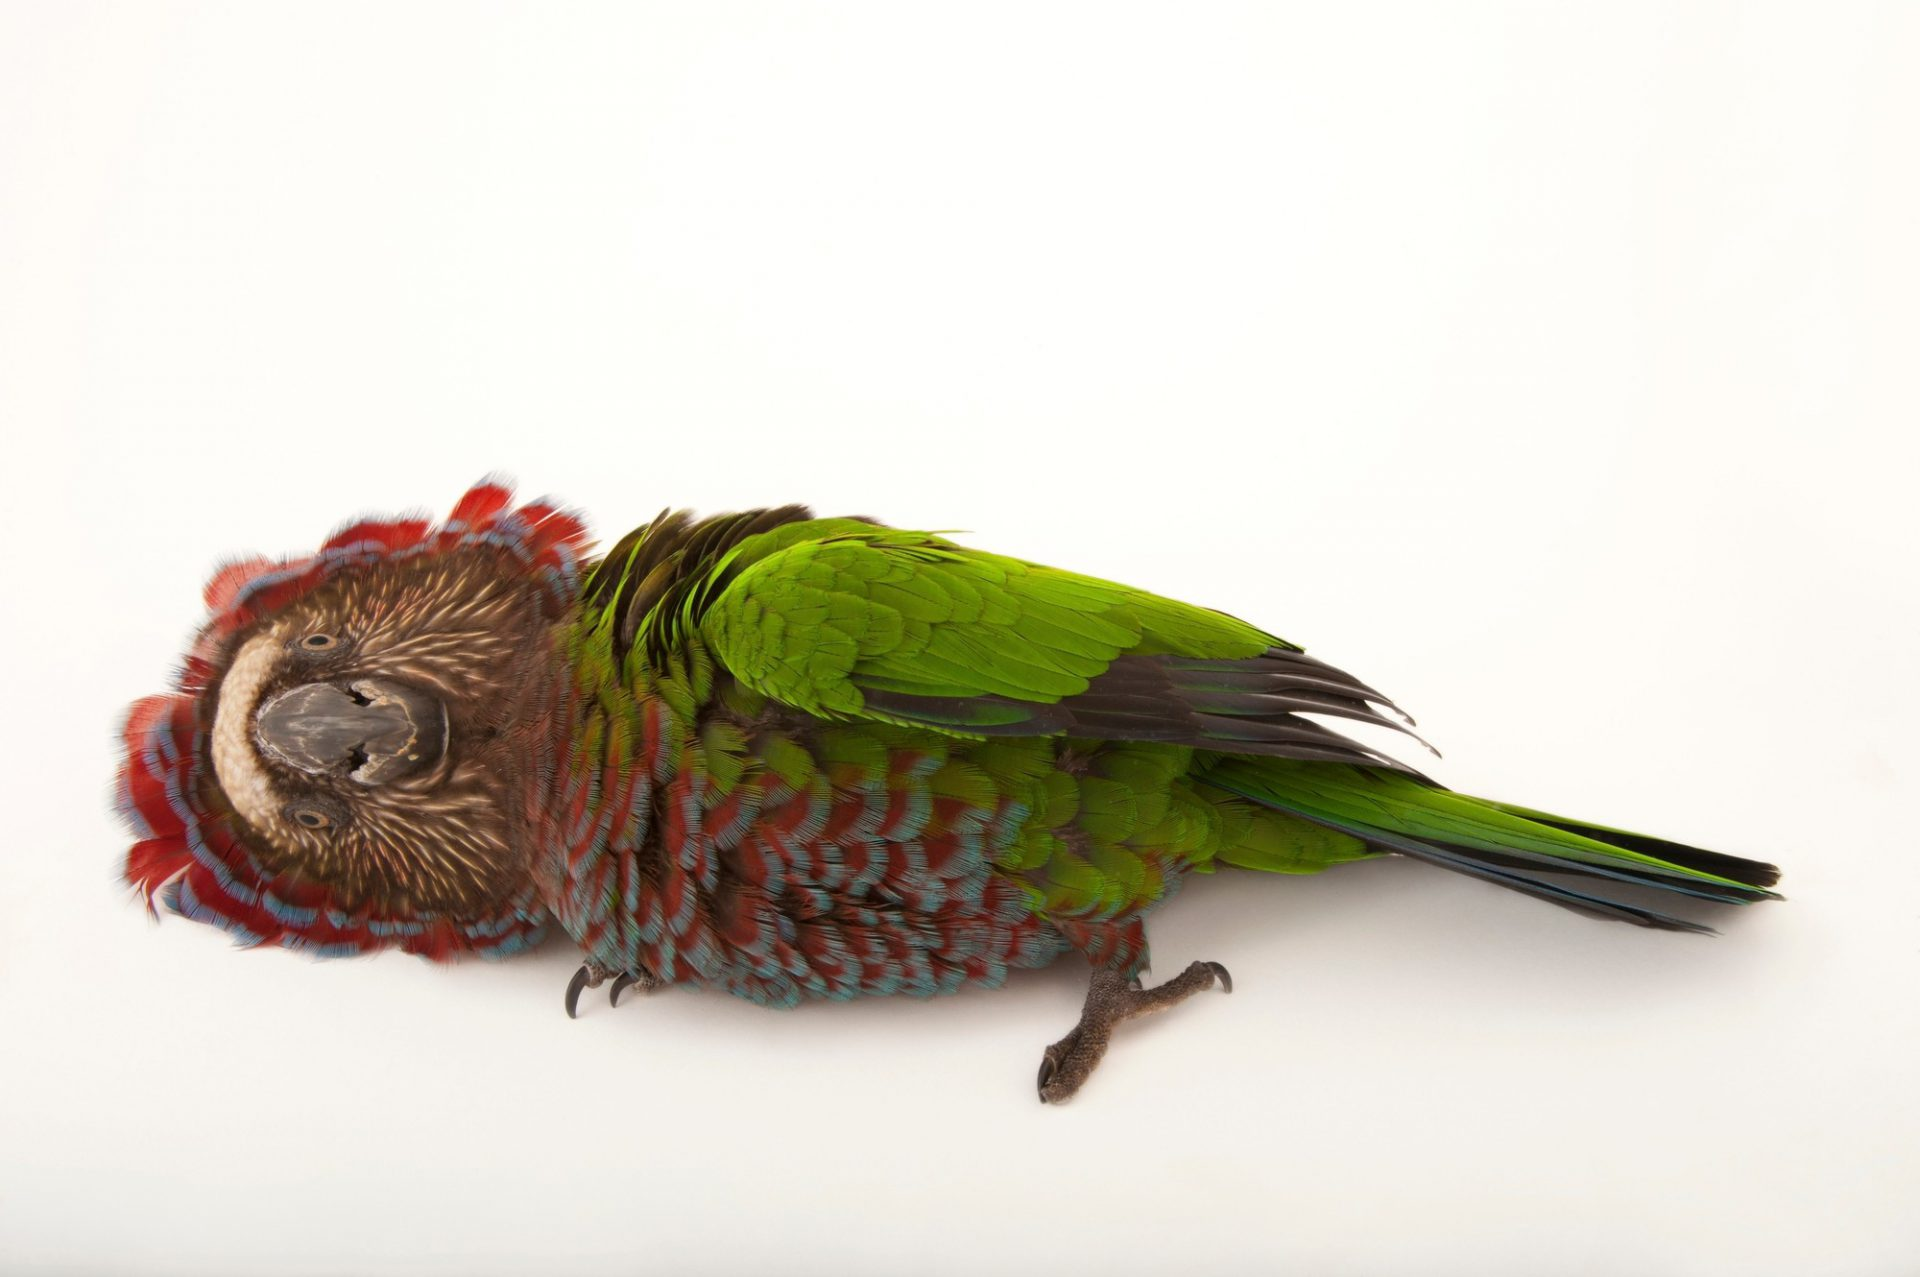 A northern red fan parrot (Deroptyus accipitrinus accipitrinus) at the Houston Zoo. This unusual Amazon basin parrot has a crown of brightly-colored head feathers it raises when it feels threatened or aggressive.